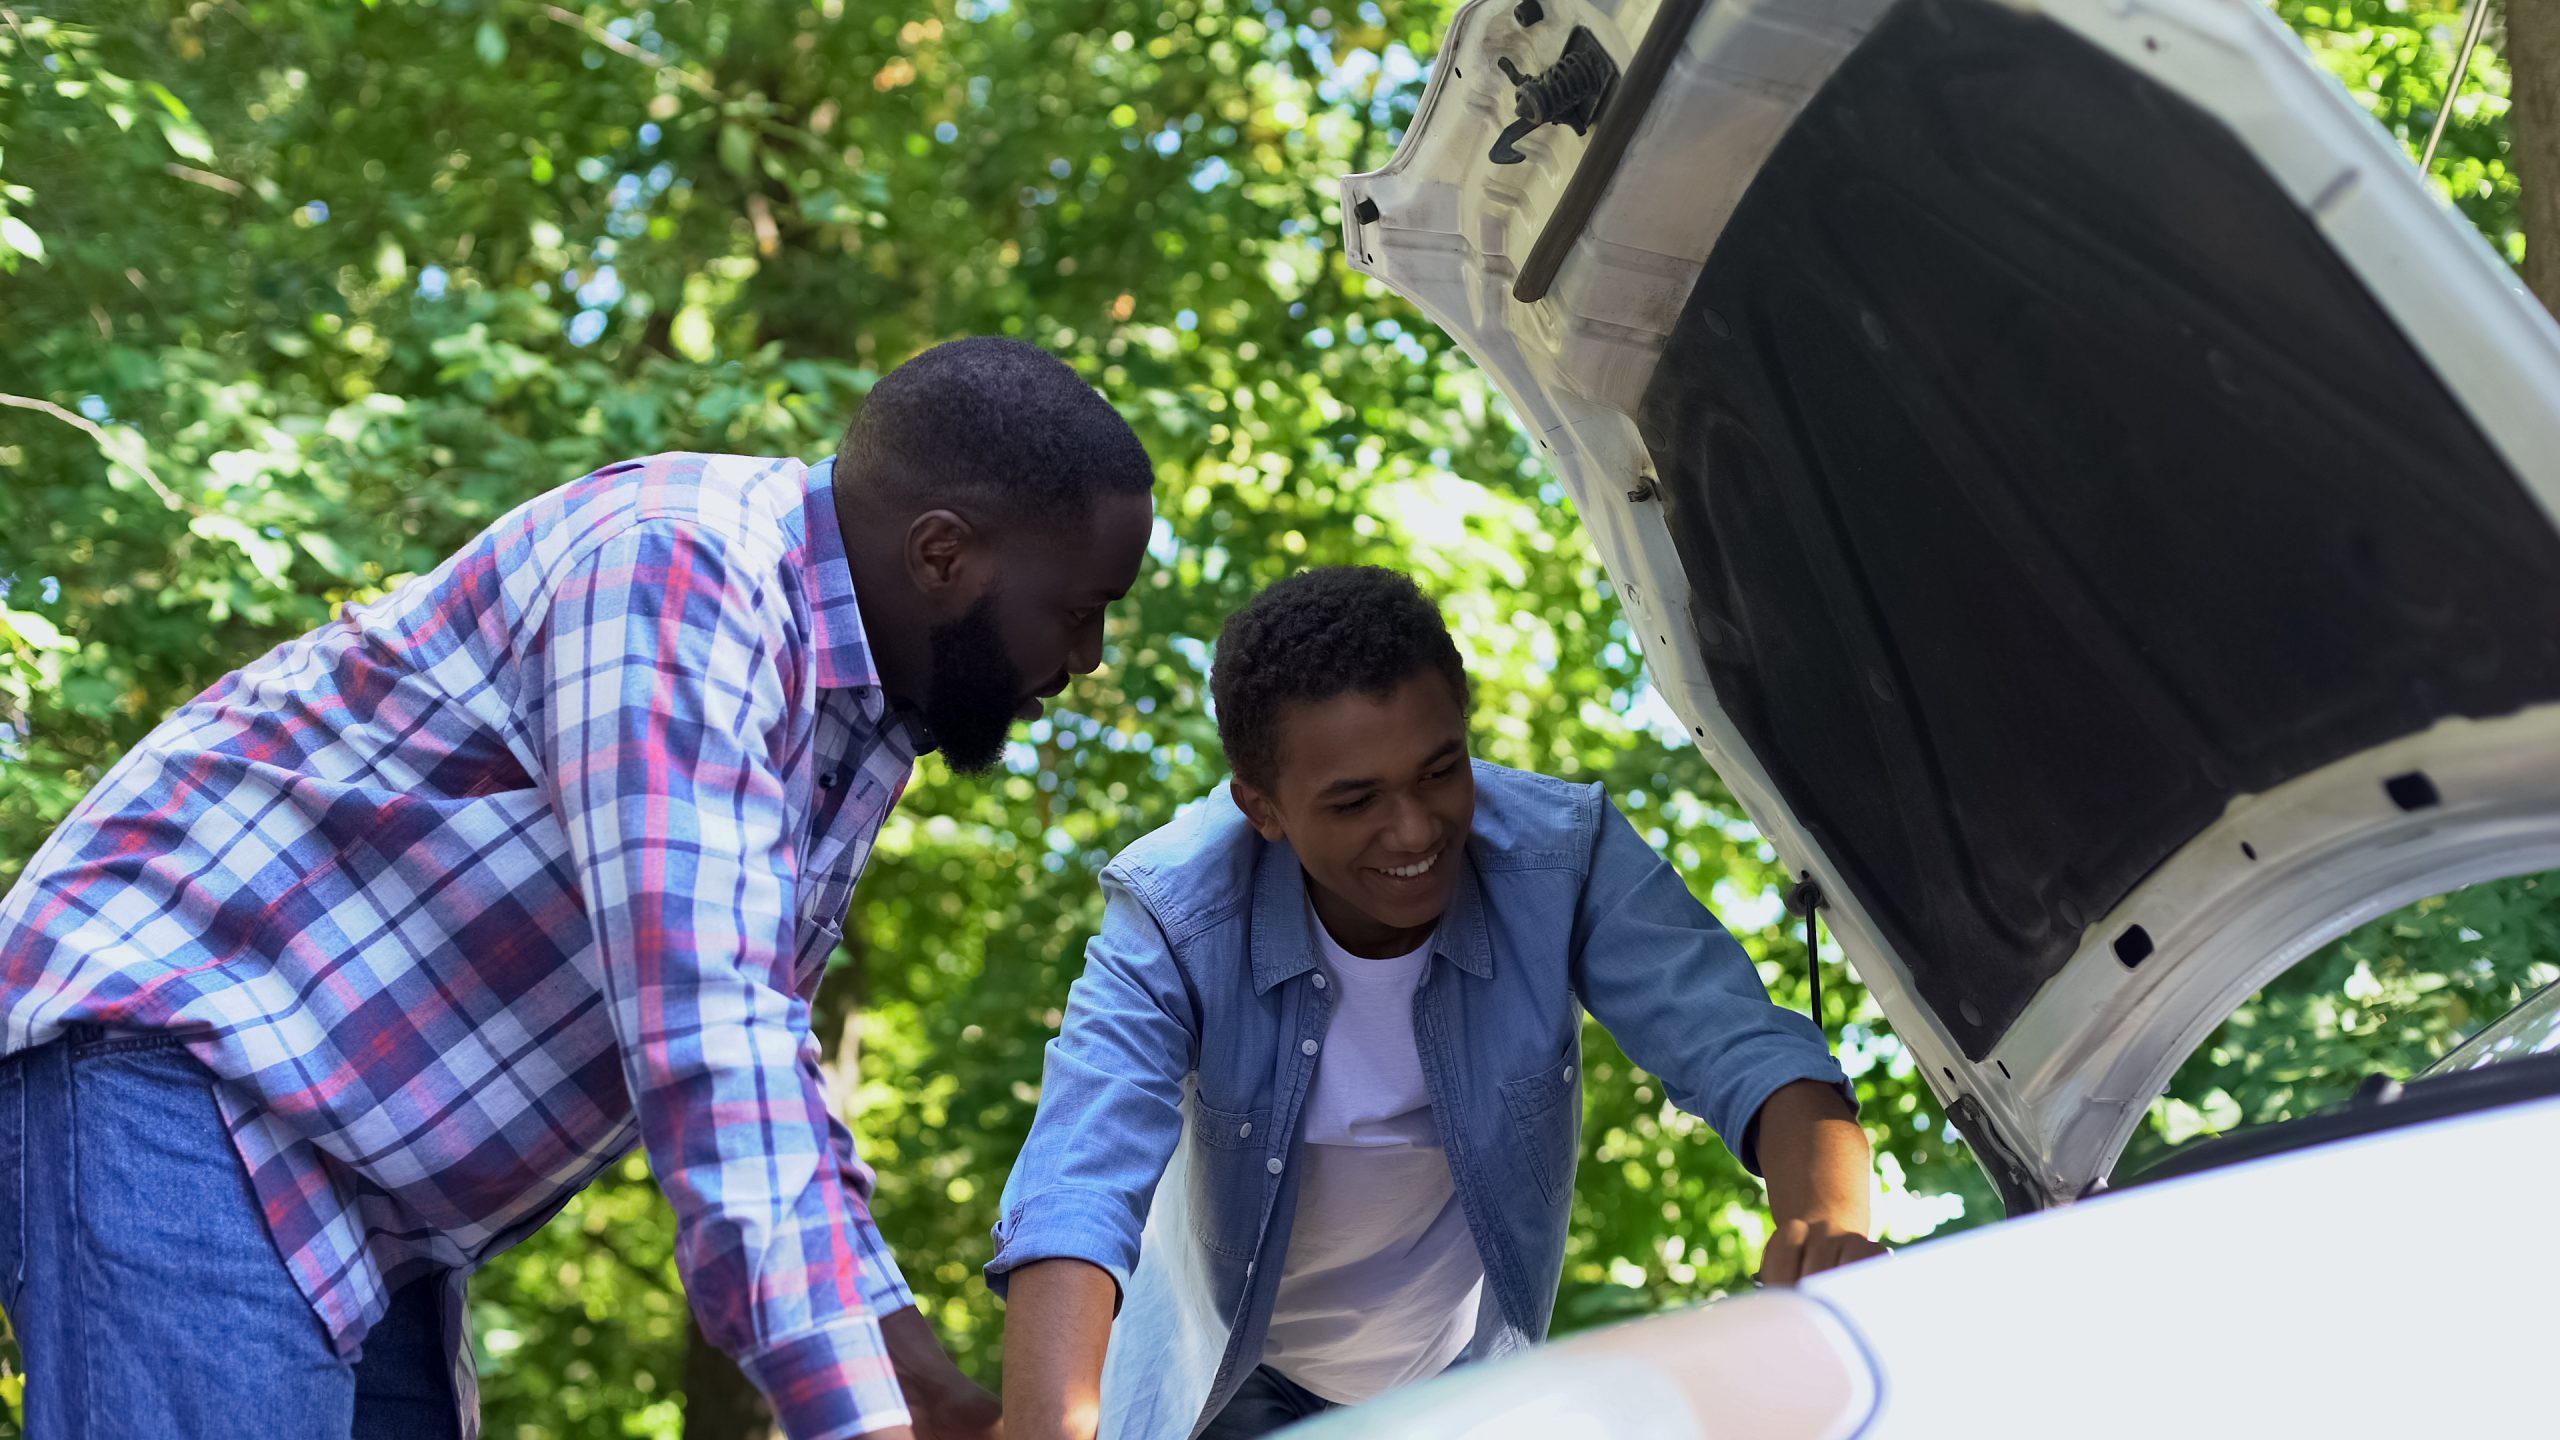 Young man learning car mechanic skills from older male teacher